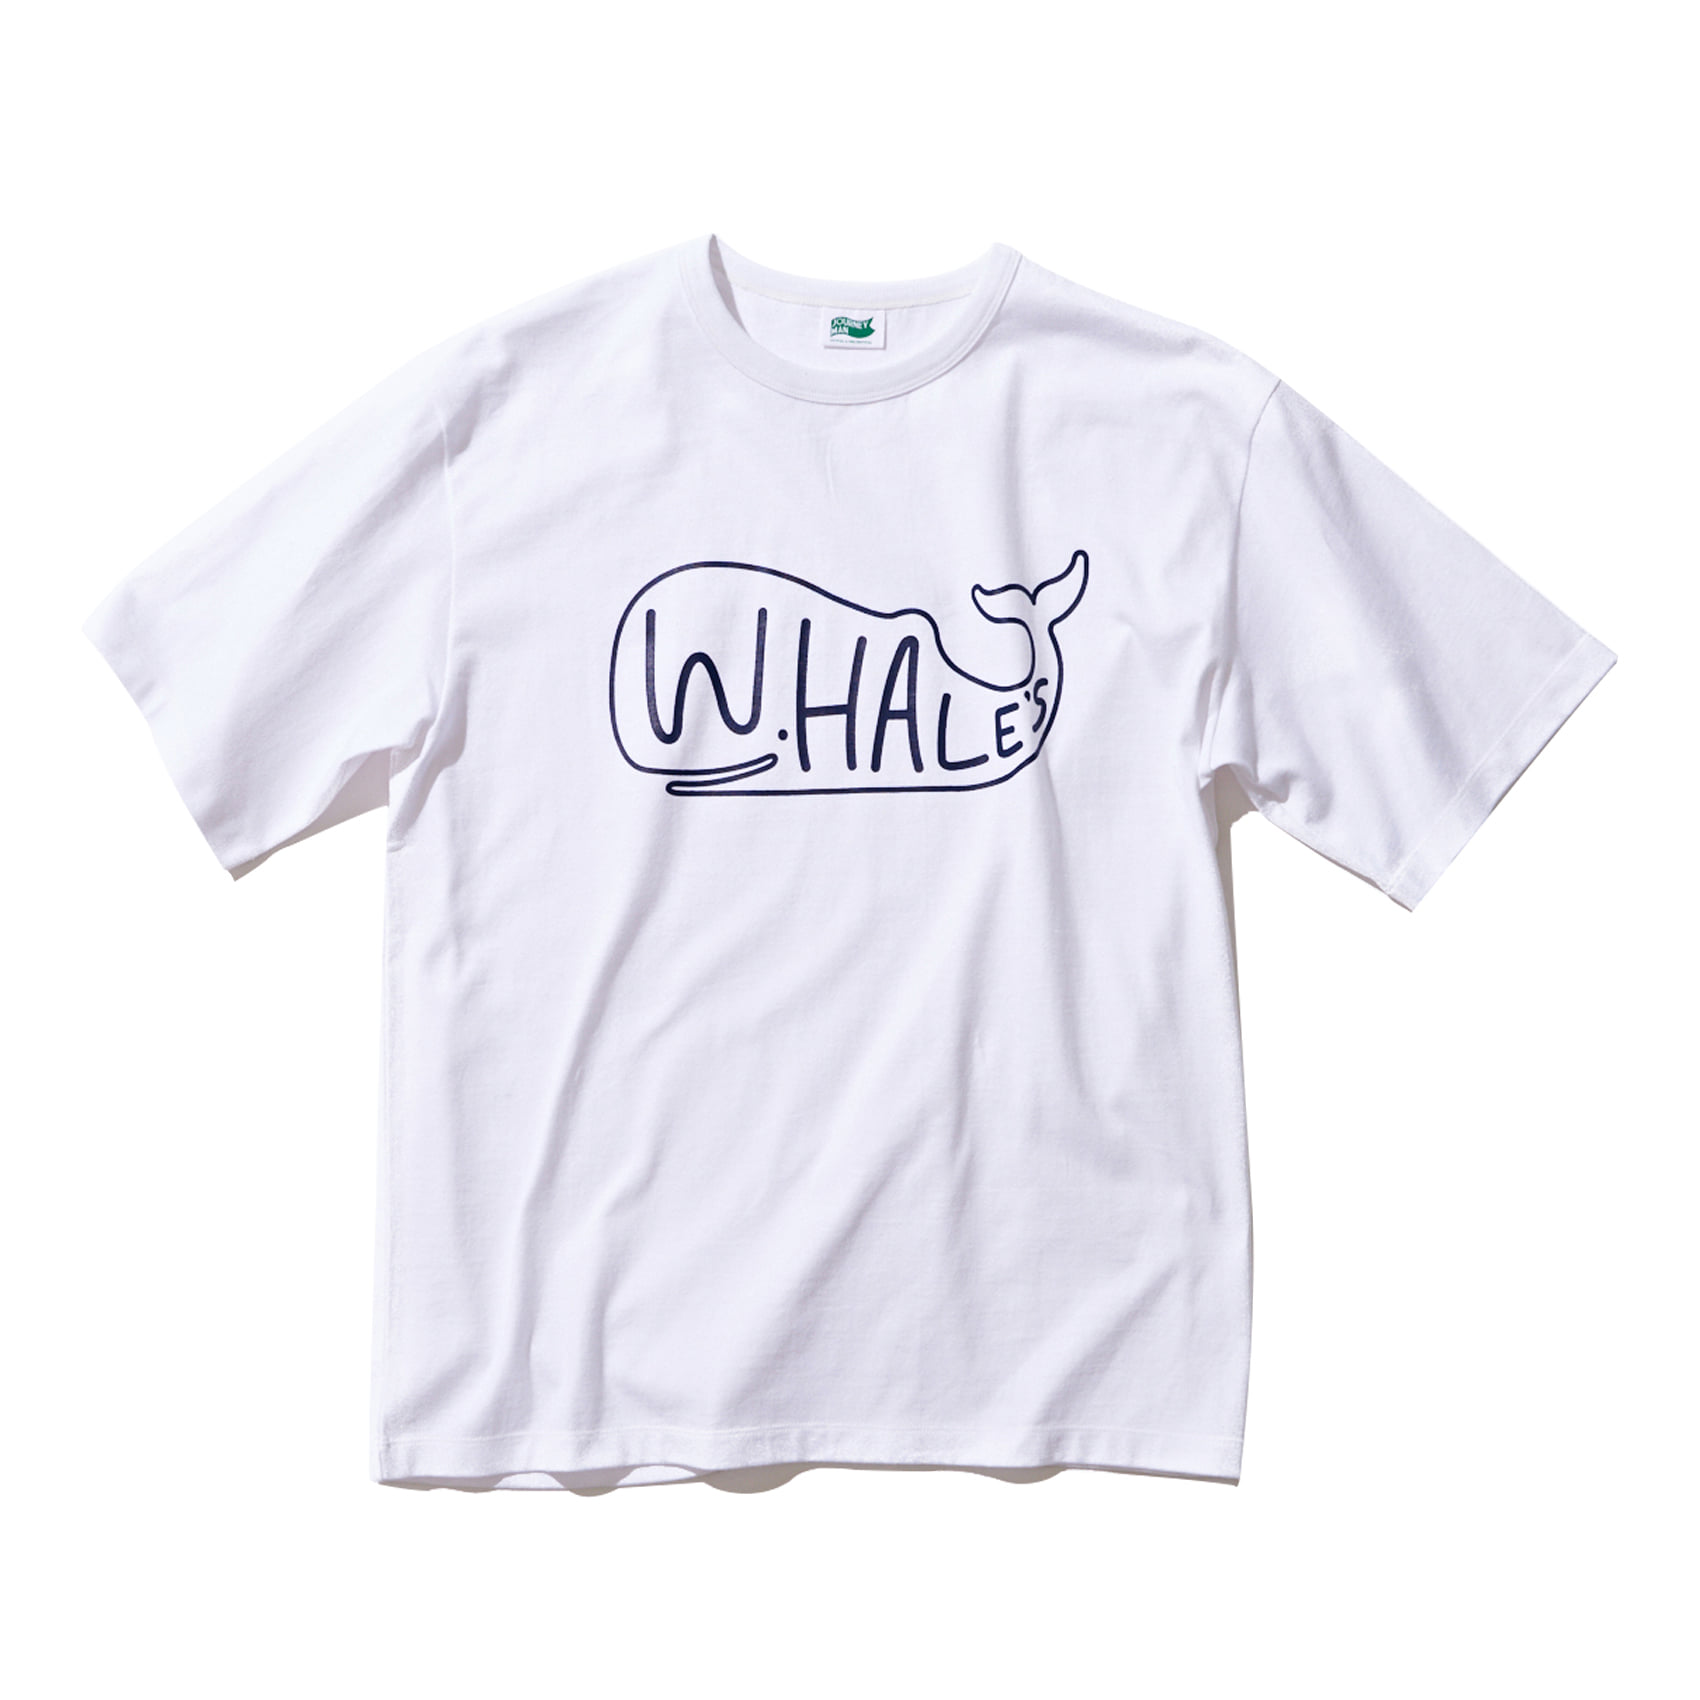 WHALES BIG LOGO T SHIRT - WHITE